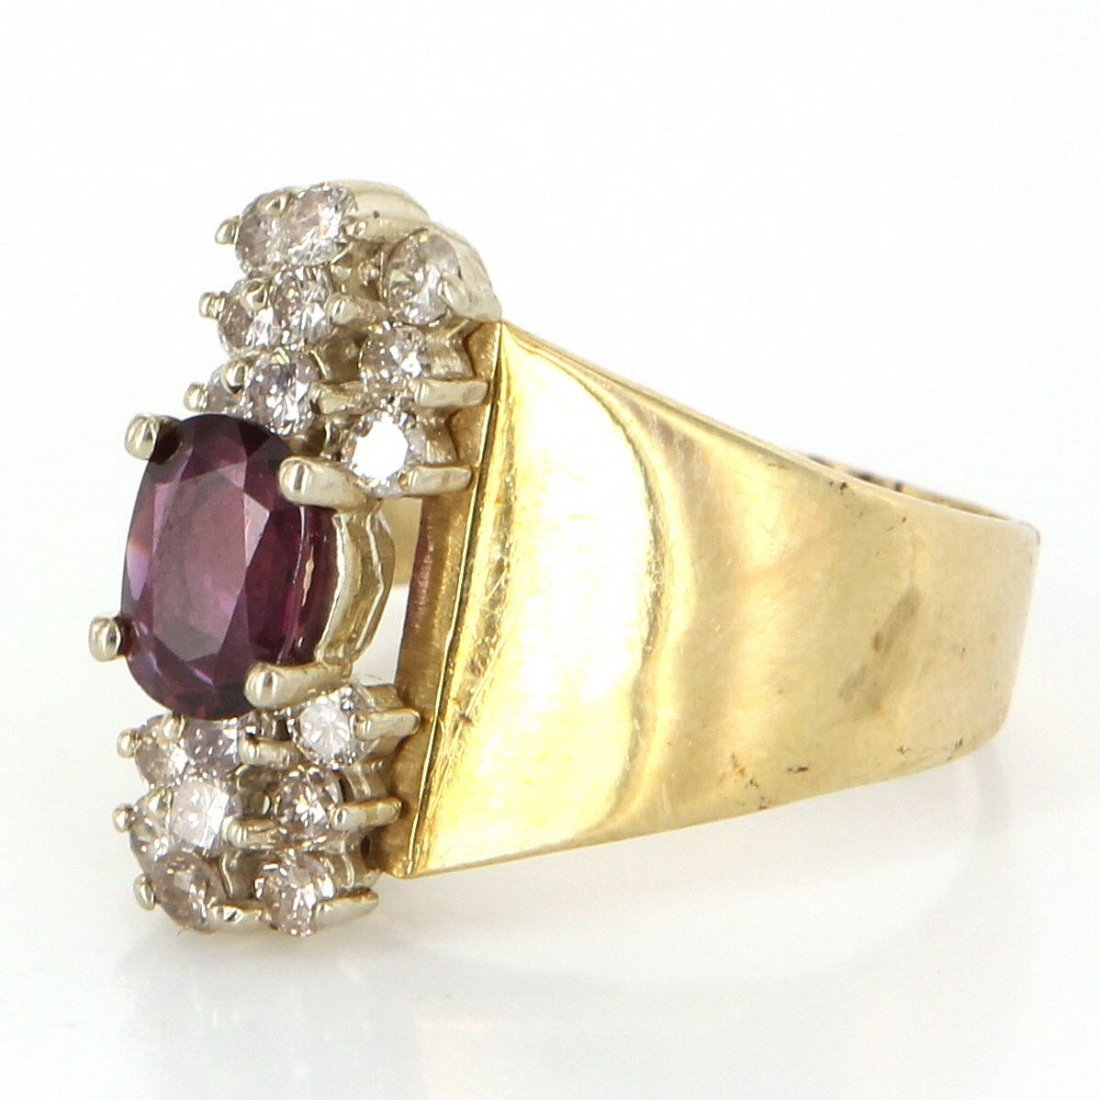 Vintage 14 Karat Yellow Gold Diamond Ruby Cocktail Ring - 3